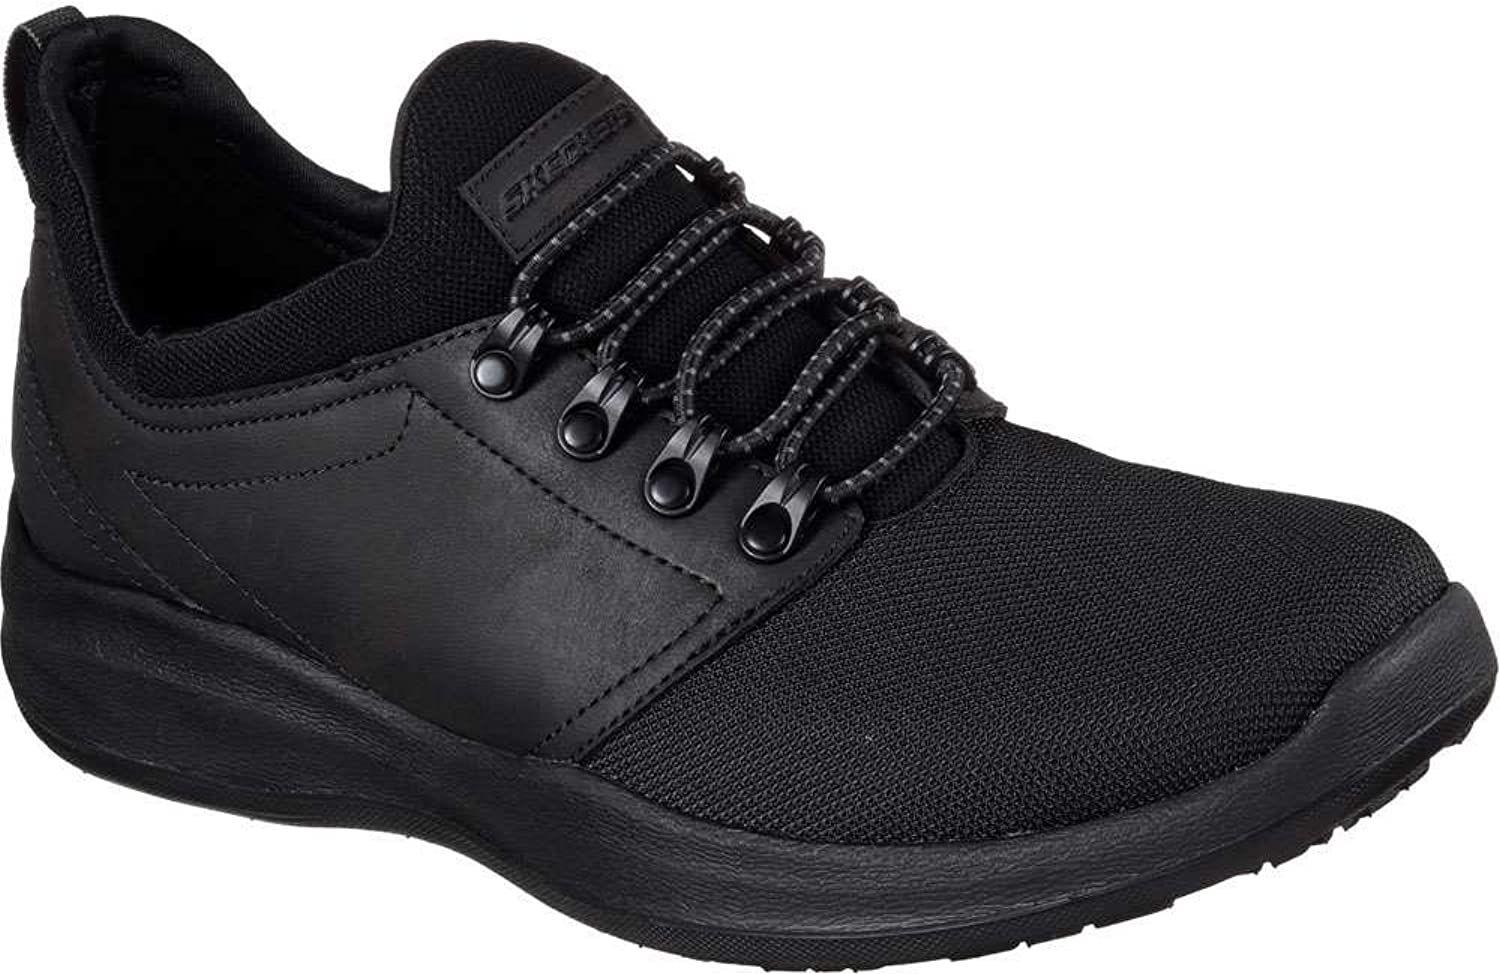 Skechers Wallen Folt Mens Slip On Sneaker Oxfords Black 13